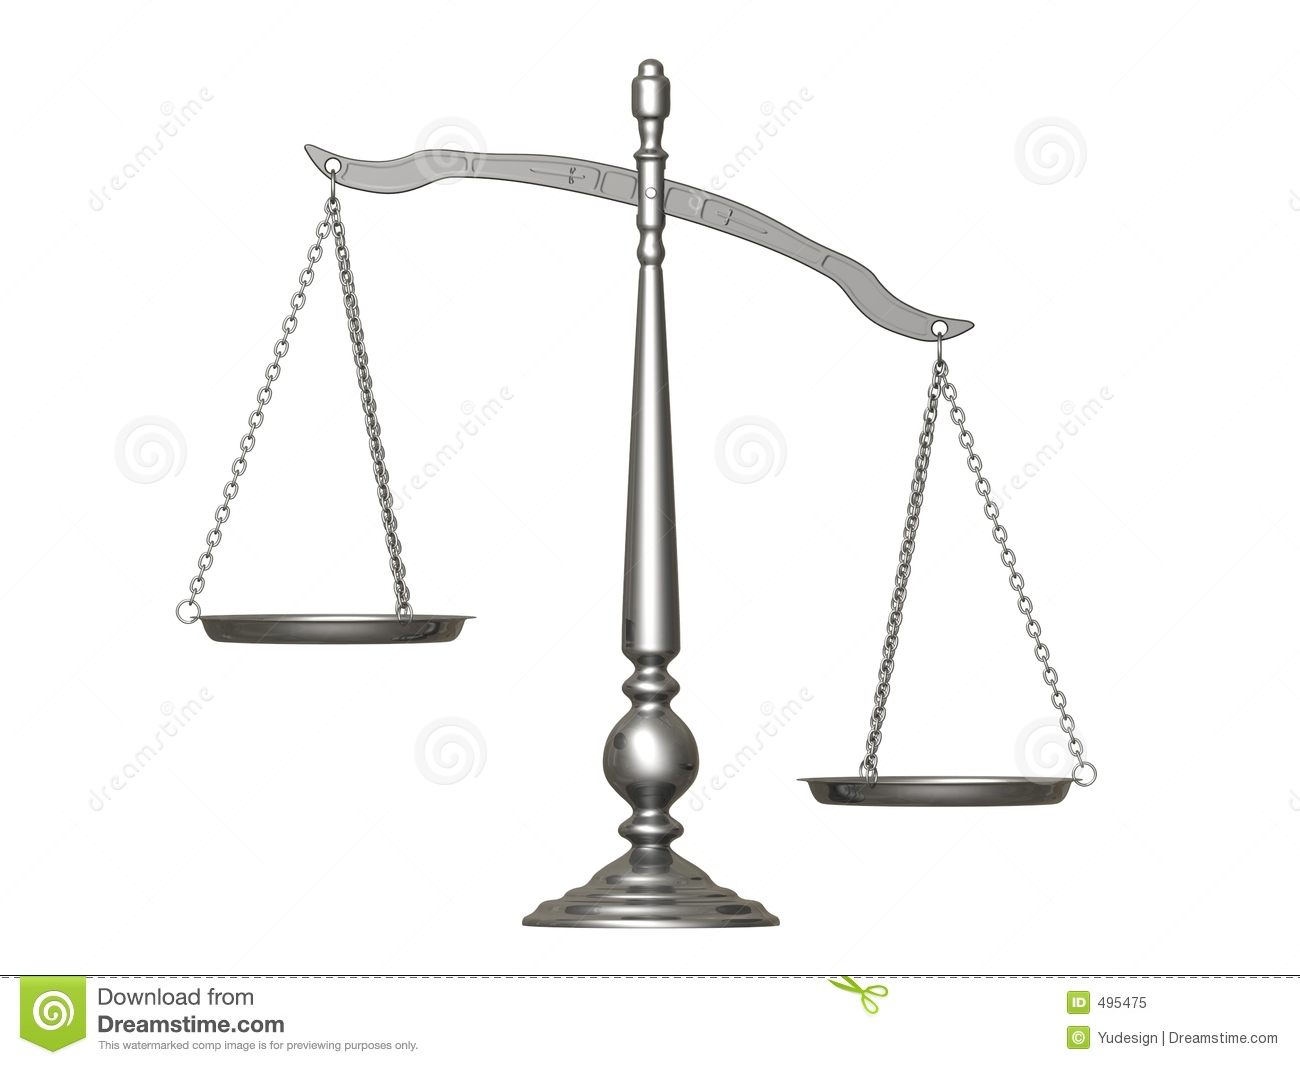 File E Bike as well Welfare besides Royalty Free Stock Photography Justice Scale Eps Image Illustration Image33207927 together with 533456875 furthermore Libra Icons. on balance clipart